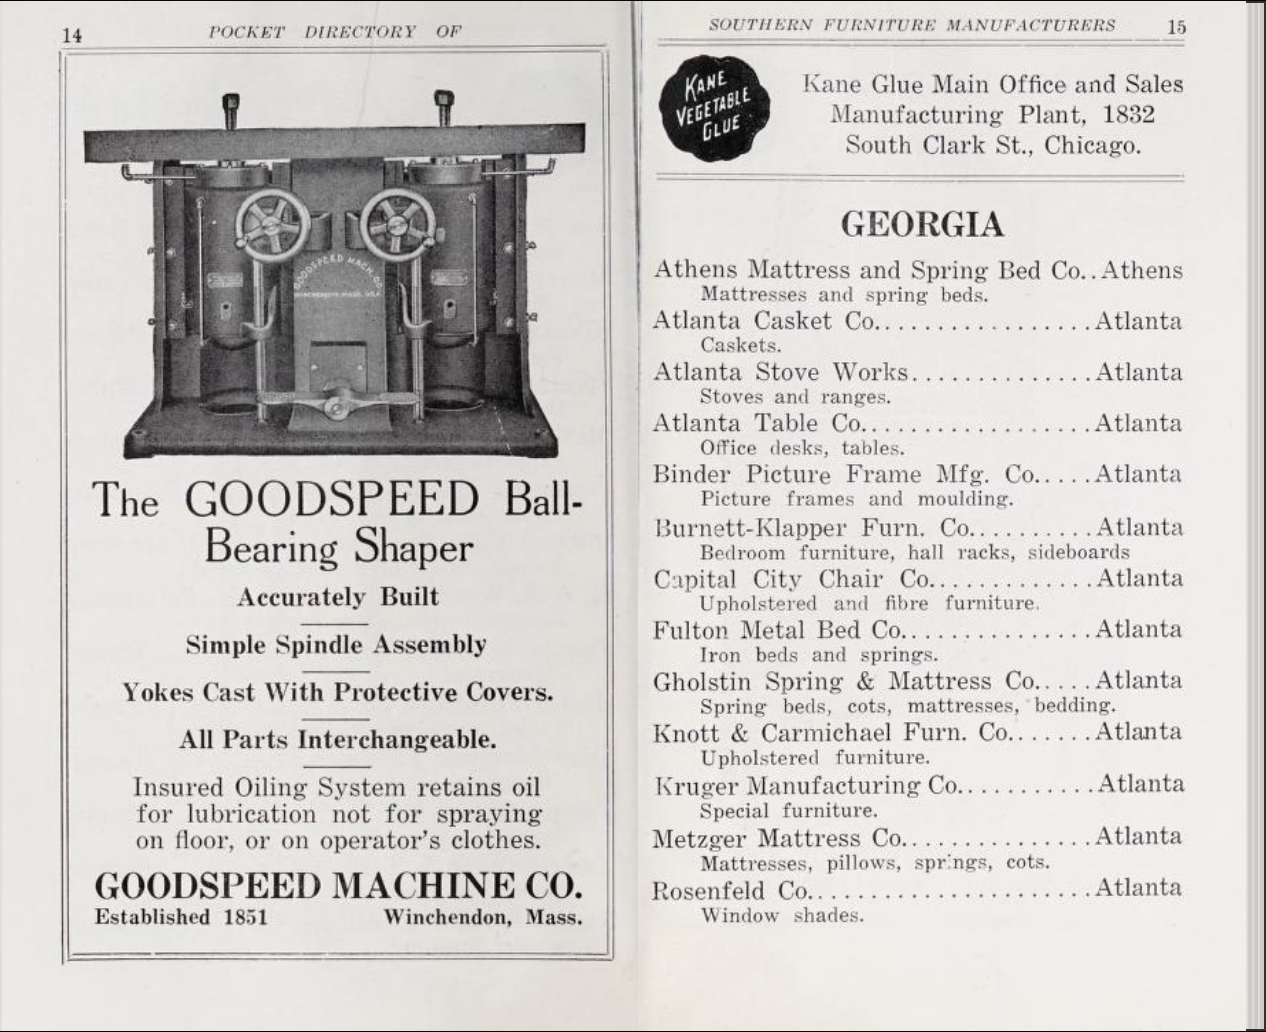 scanned page spread from Pocket Directory of Southern Furniture Manufacturers